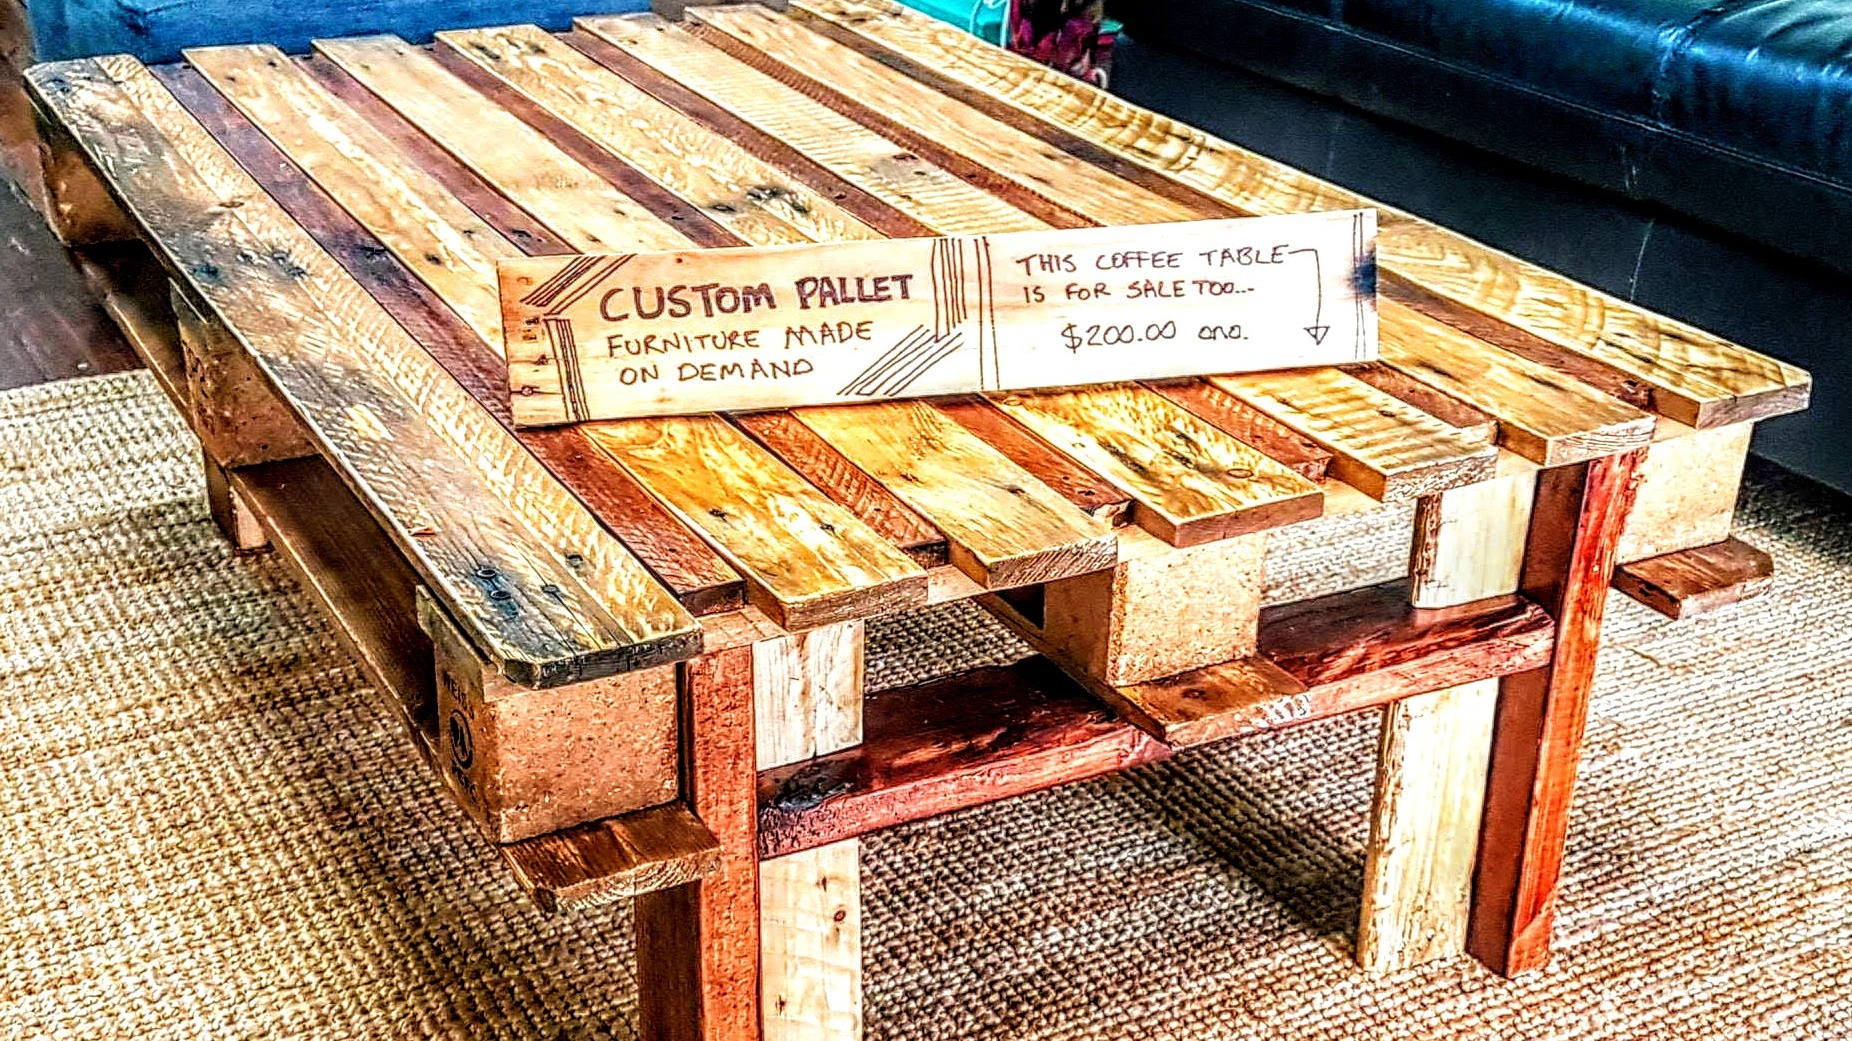 Custom Furniture/Lighting - Furniture design and making things out of upcycled items is one of my passions.